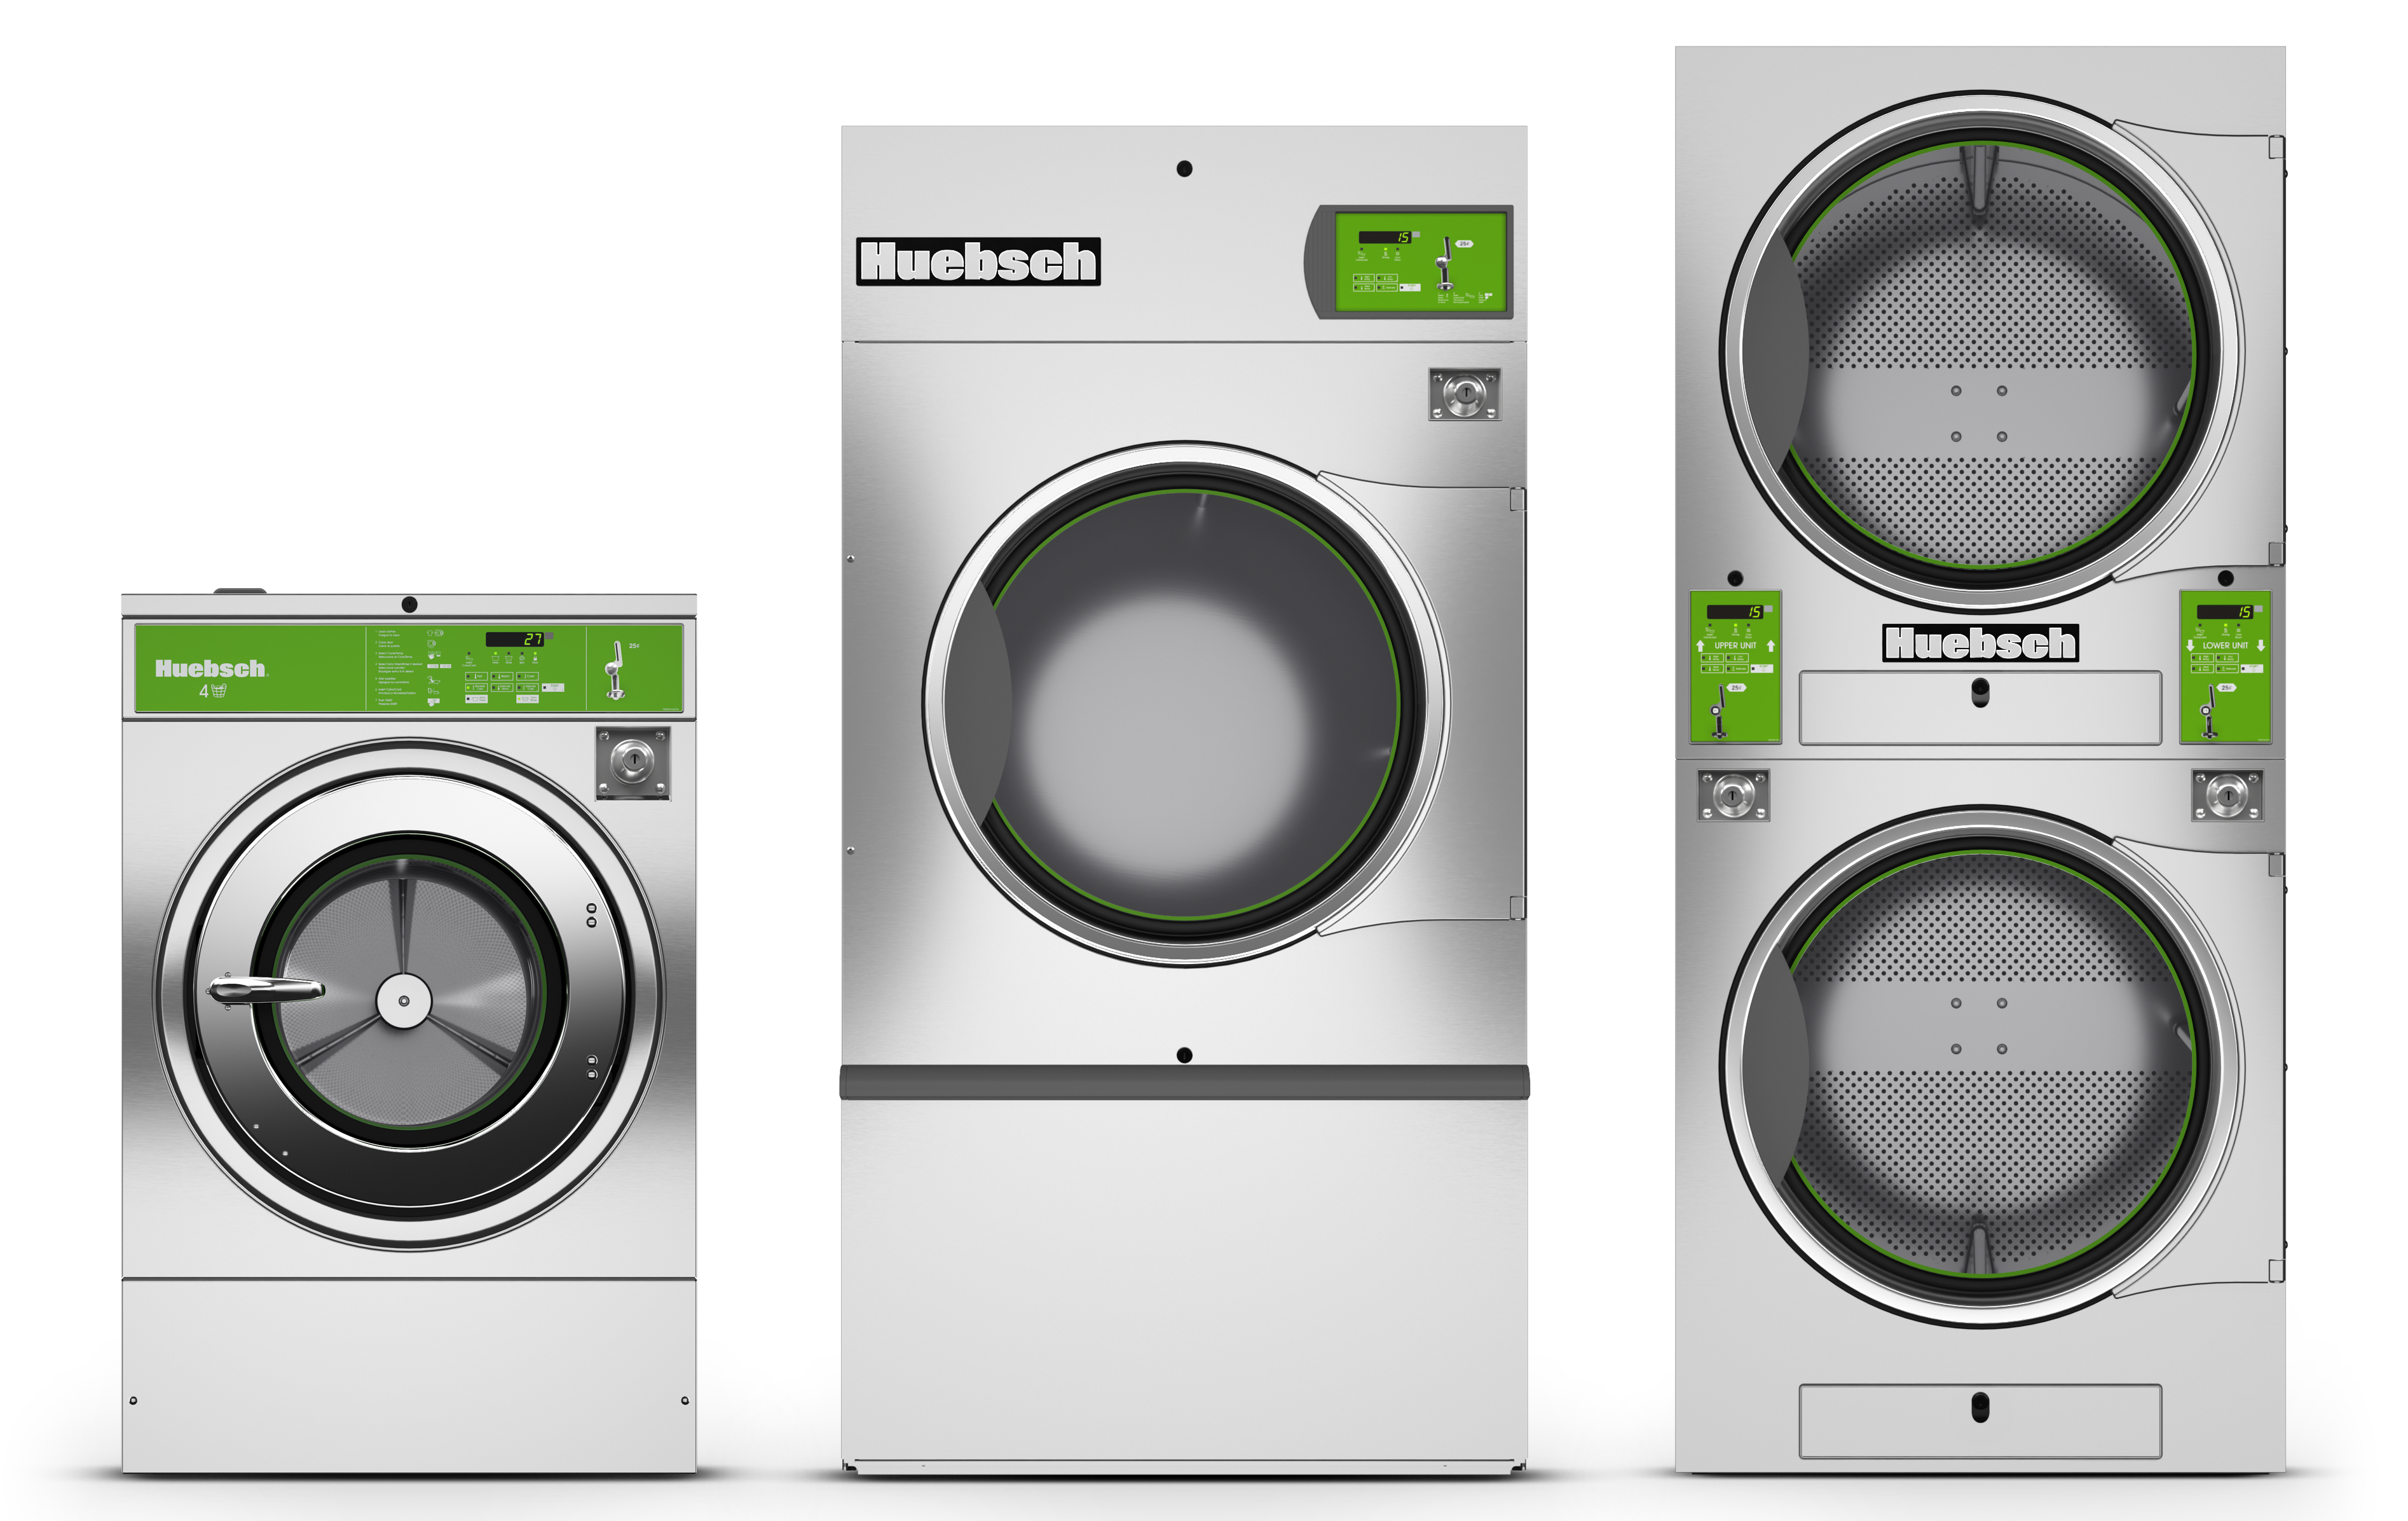 Huebsch Vended Laundry Equipment